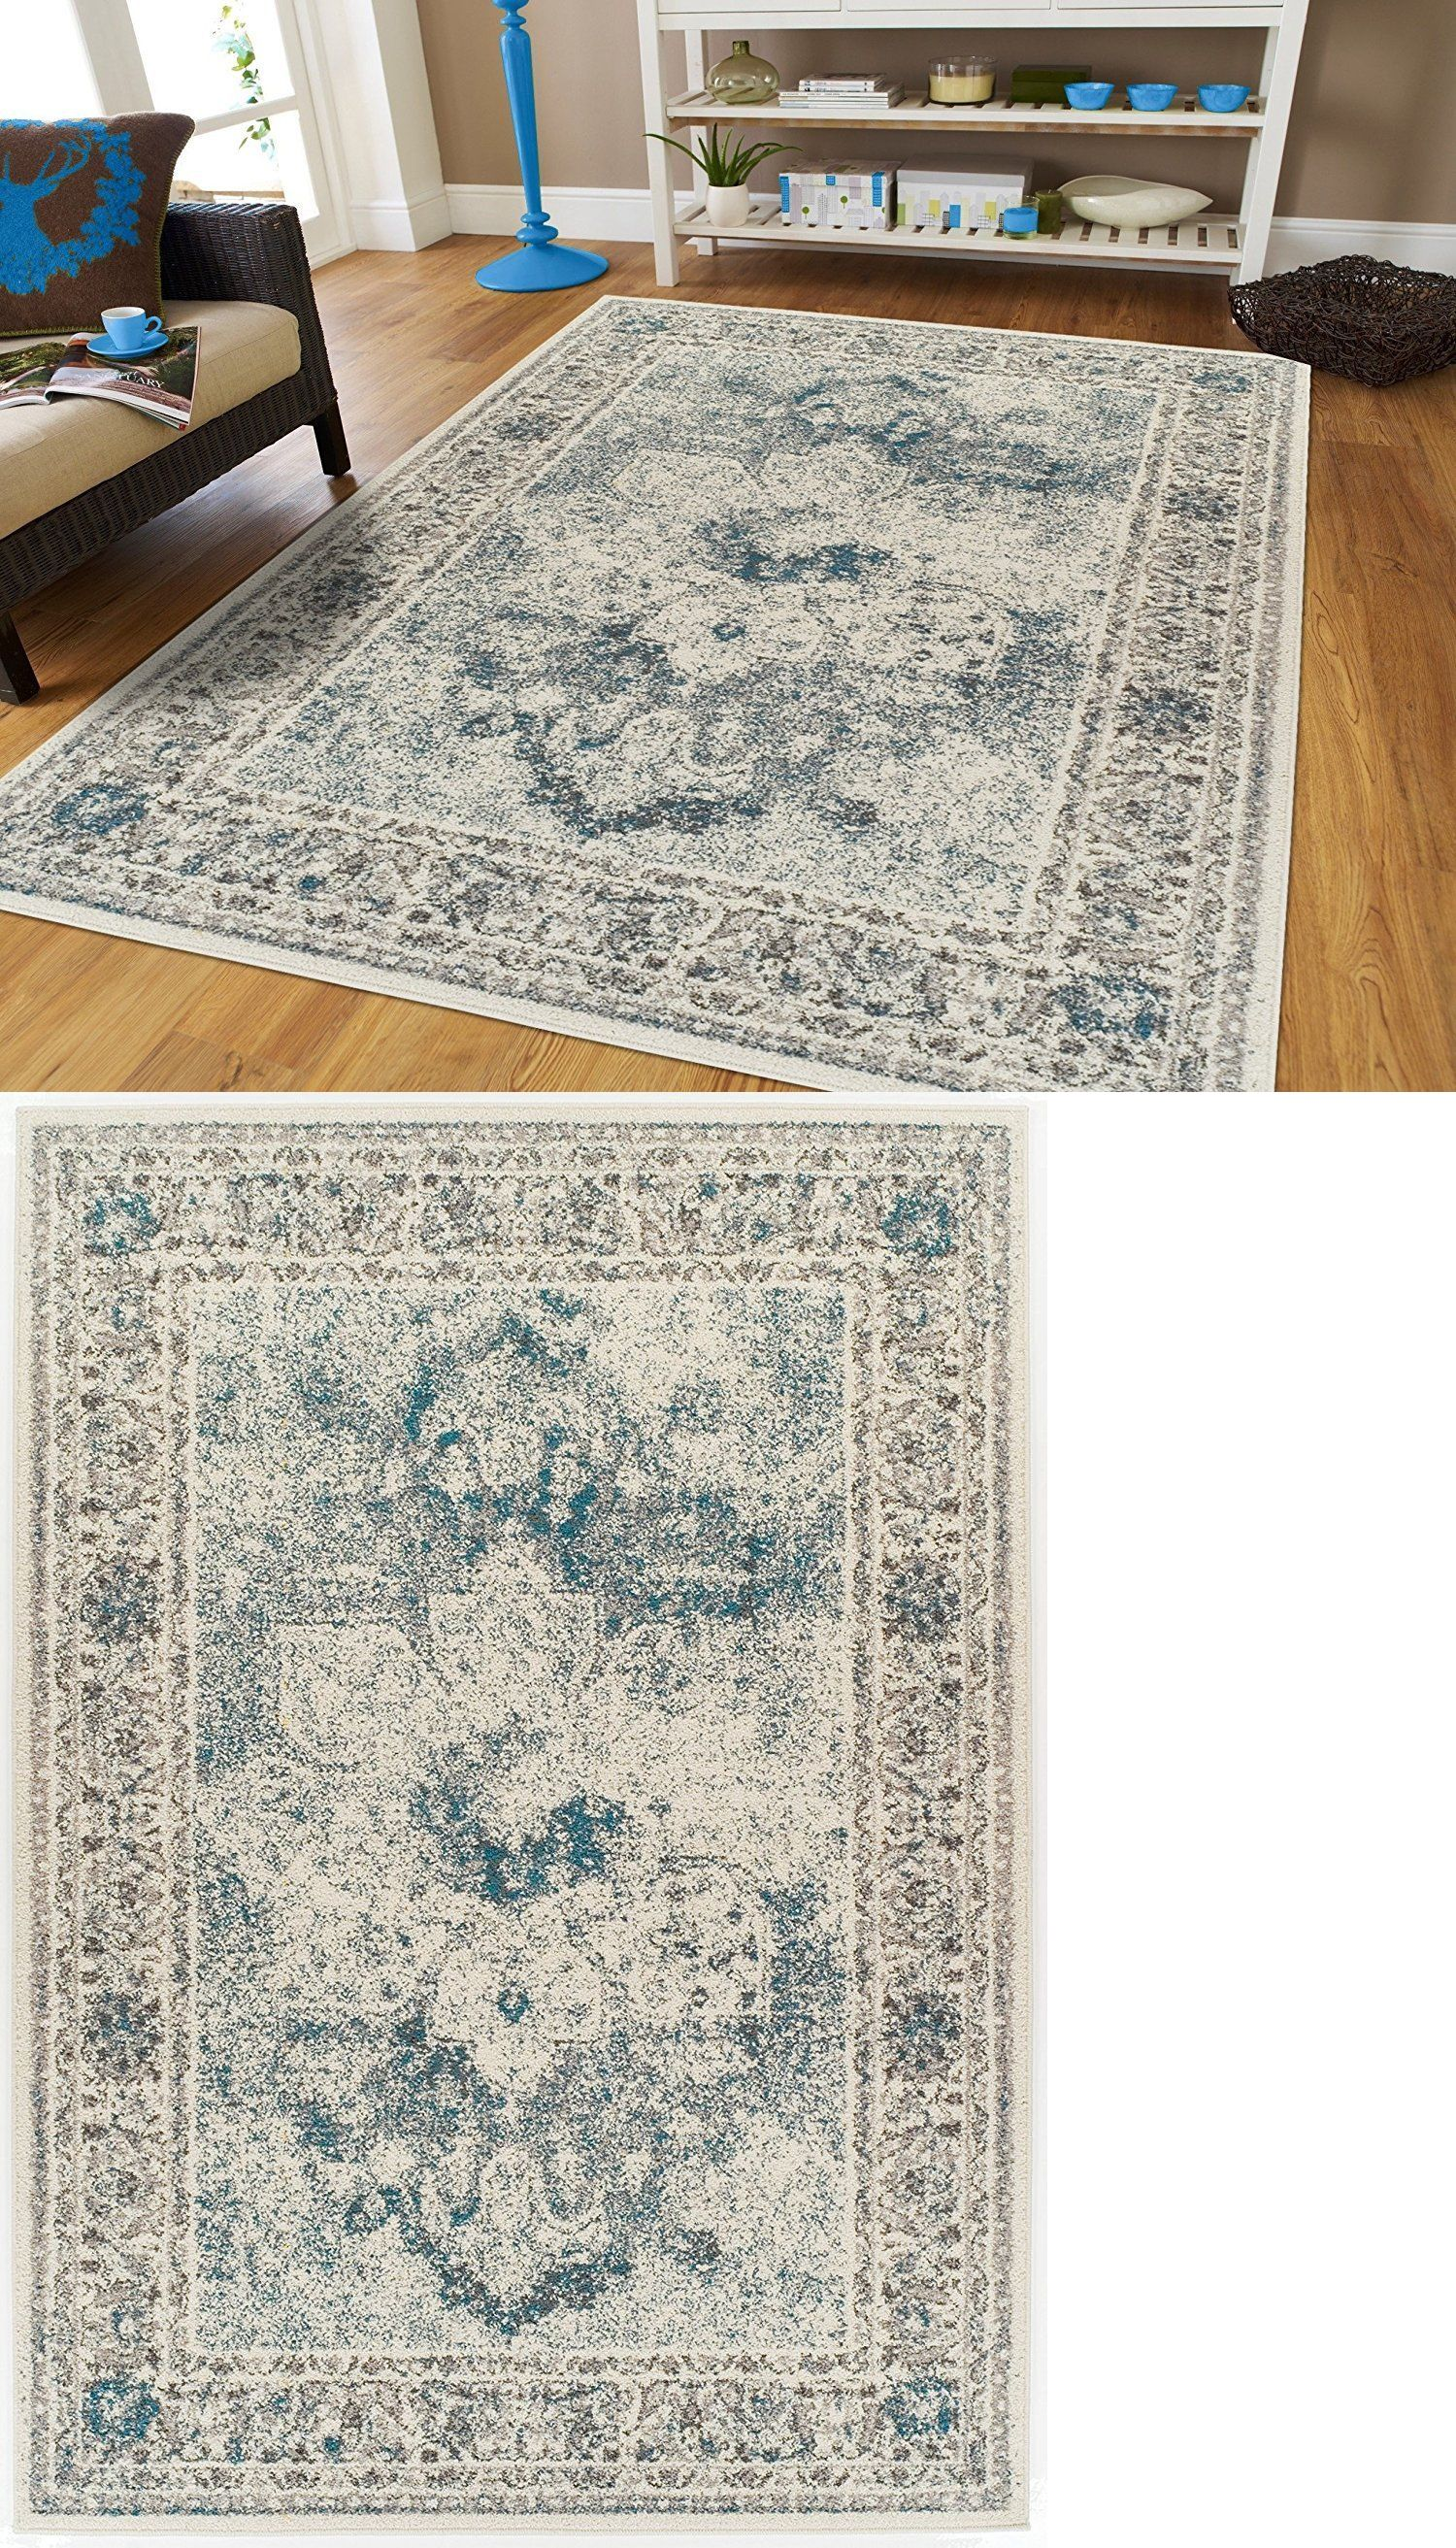 Living Room Rugs 8x10 Pictures Of Apartment Rooms Area 45510 Distressed Cream Blue Rug 5x7 Runner 2x8 Buy It Now Only 99 98 On Ebay